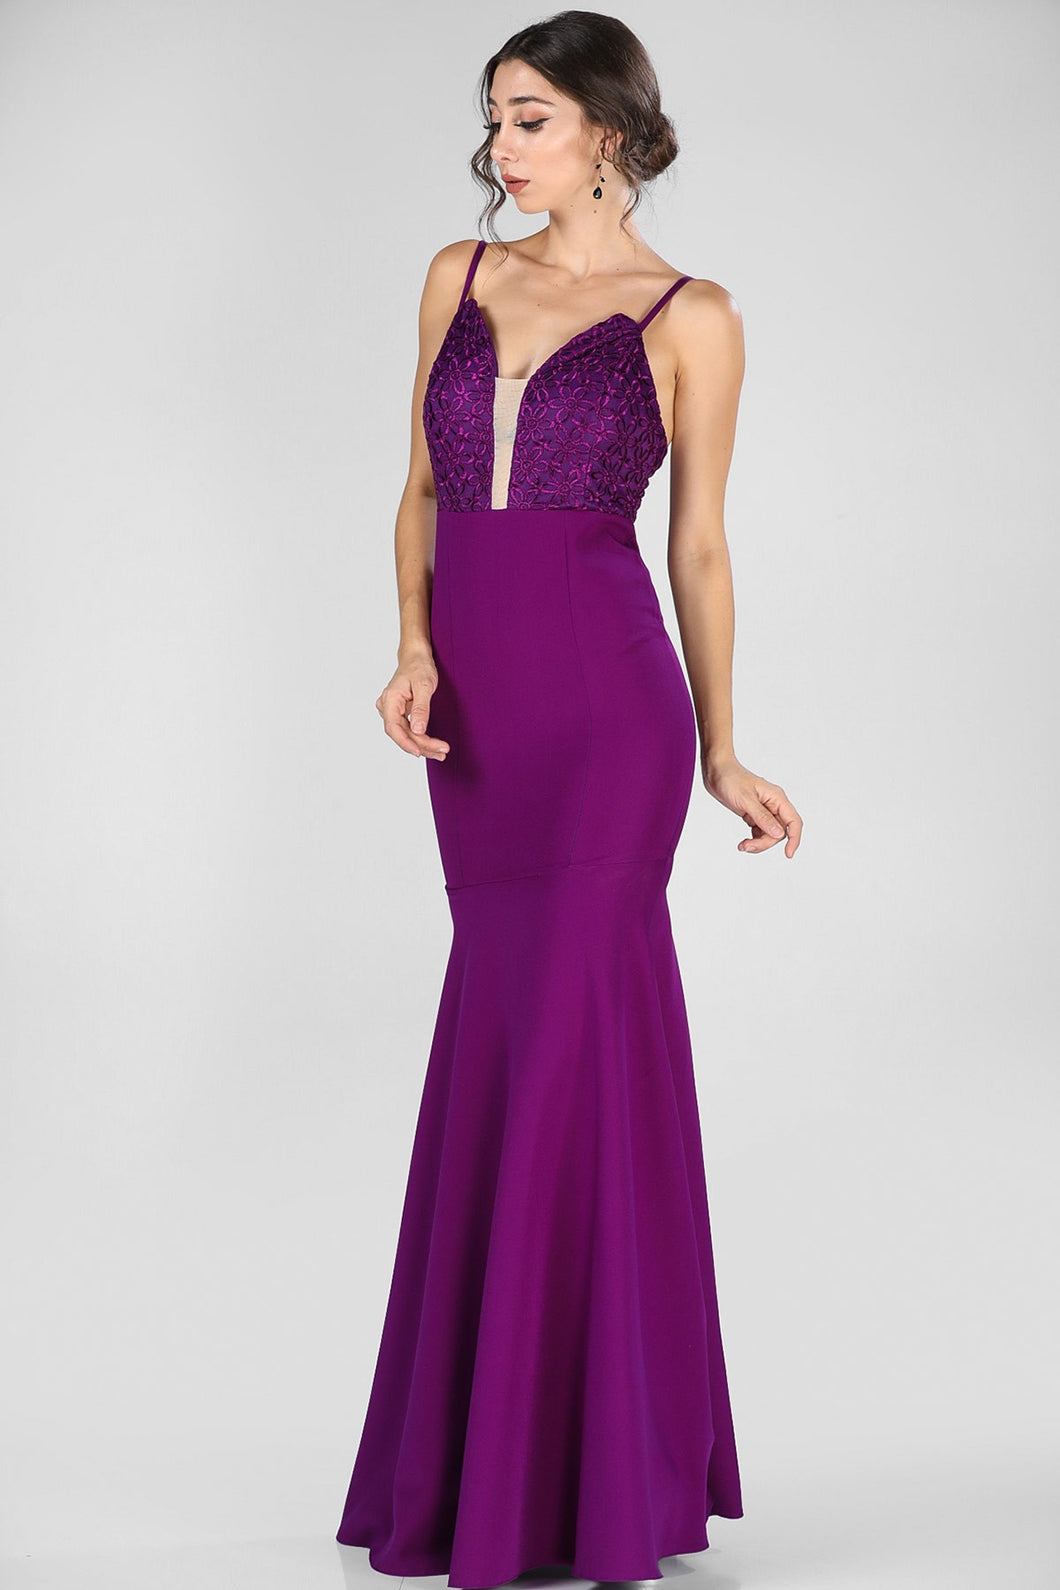 Purple Patterned Evening Dress